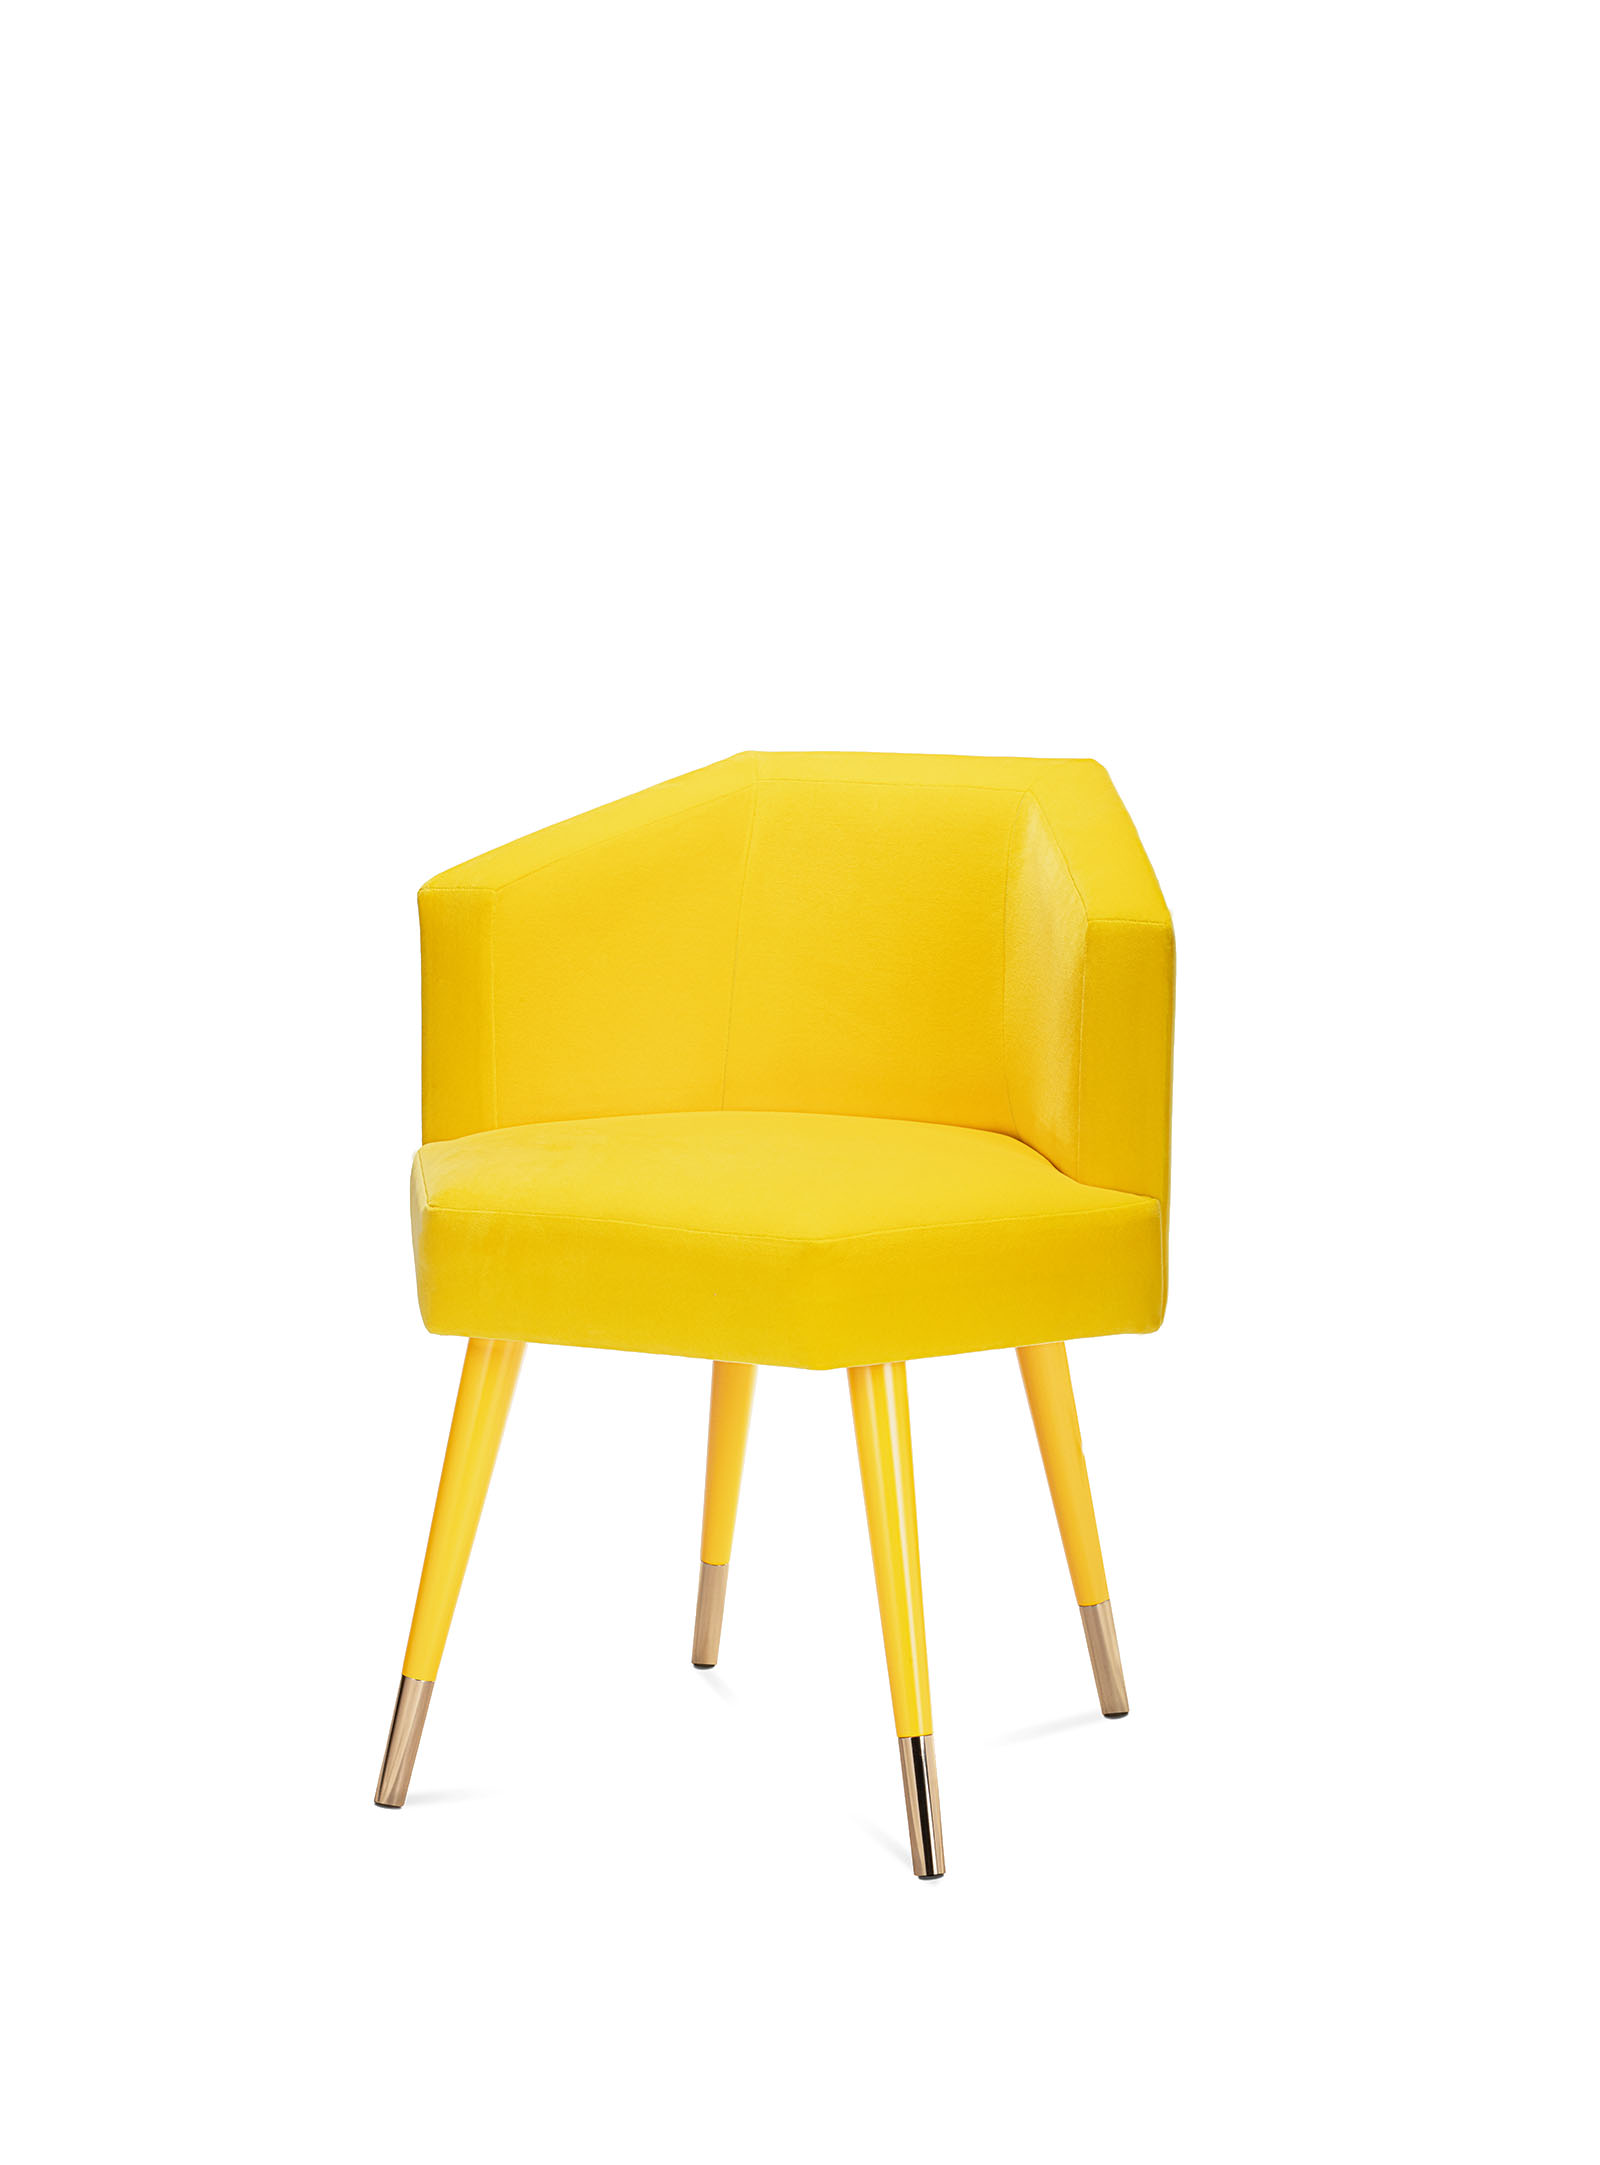 home-BEELICIOUS-CHAIR-3